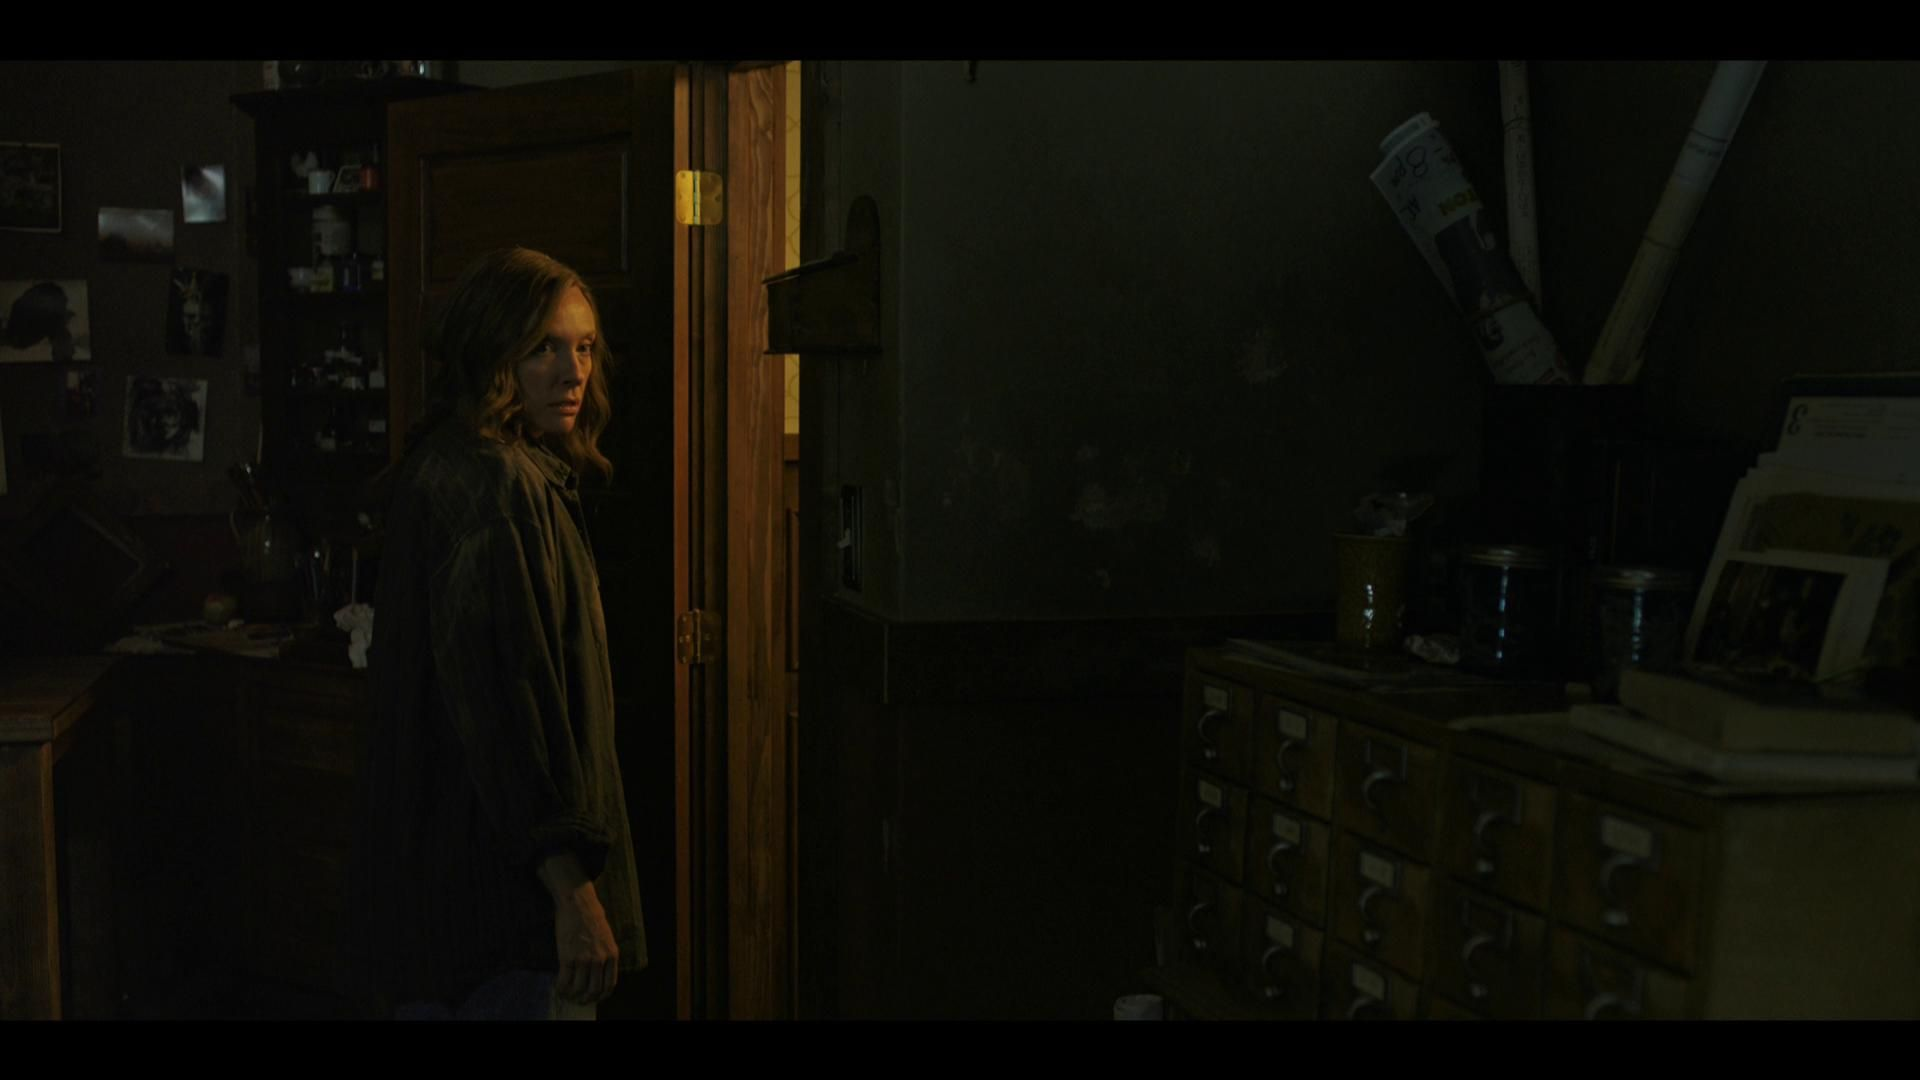 Hereditary 4k Uhd Review Redvdit Hereditary Grieving Families Gabriel Byrne